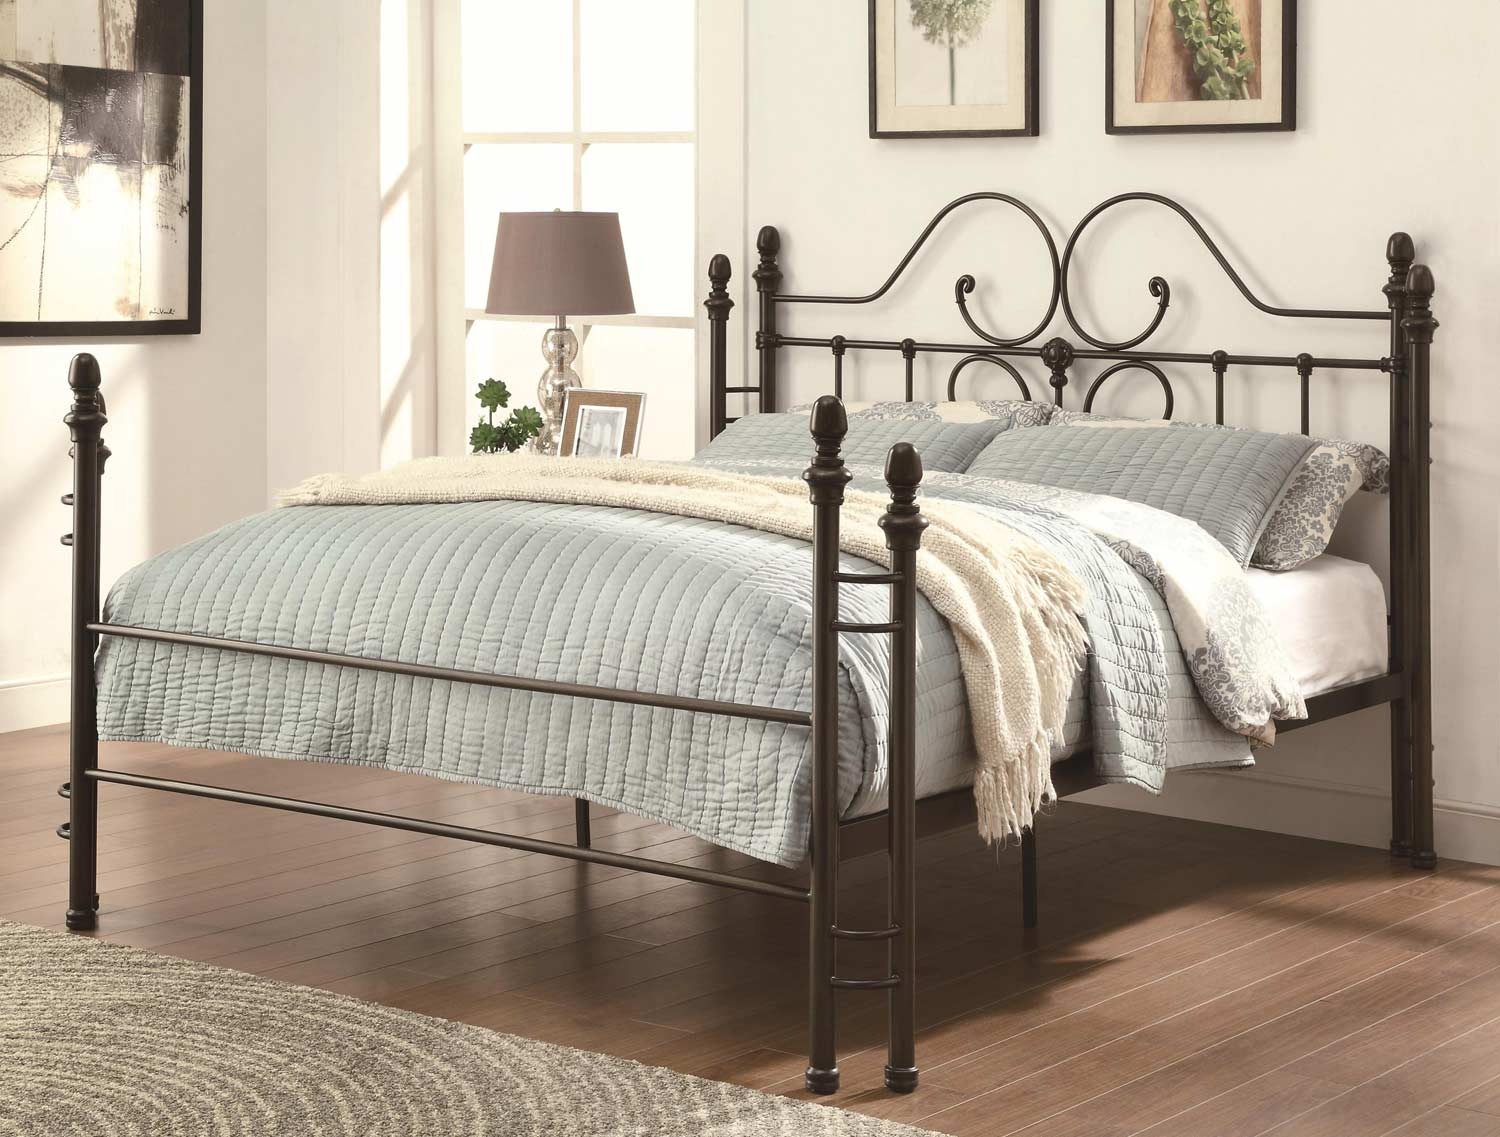 Coaster 300471 Iron Queen Bed